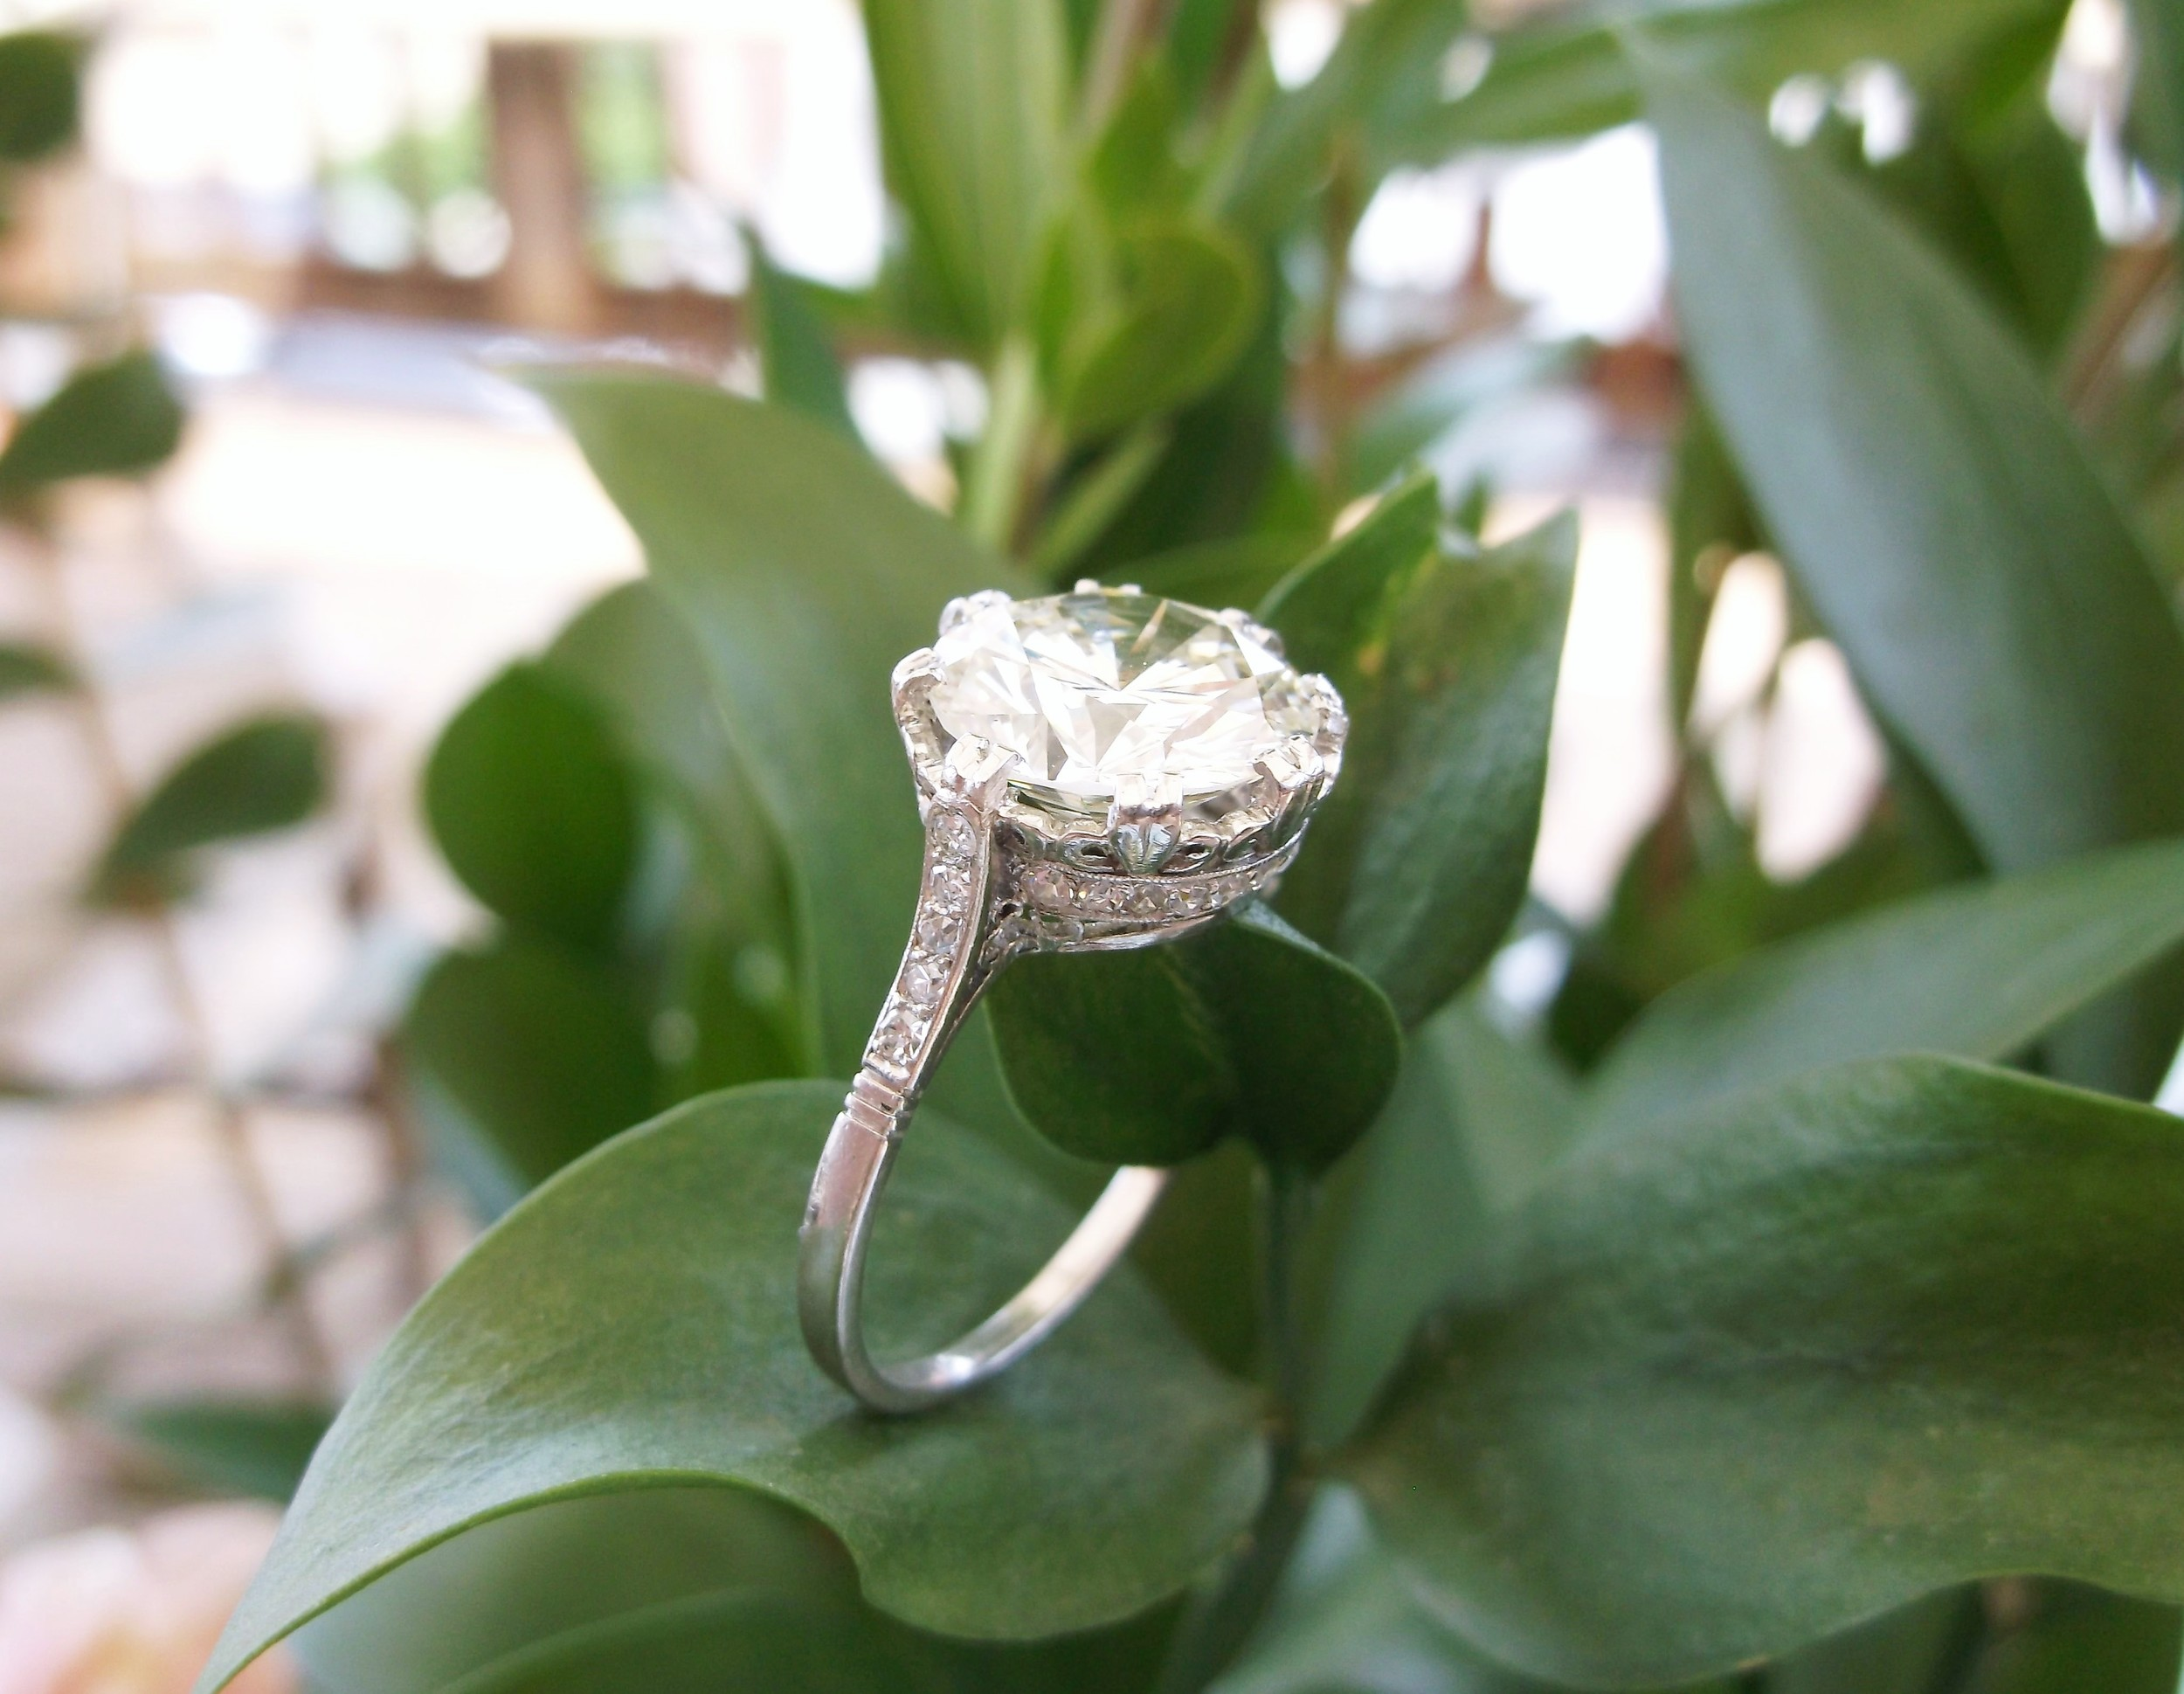 SOLD - Jaw dropping 3.58 carat round diamond set in a stunning Art Deco diamond and platinum mounting.